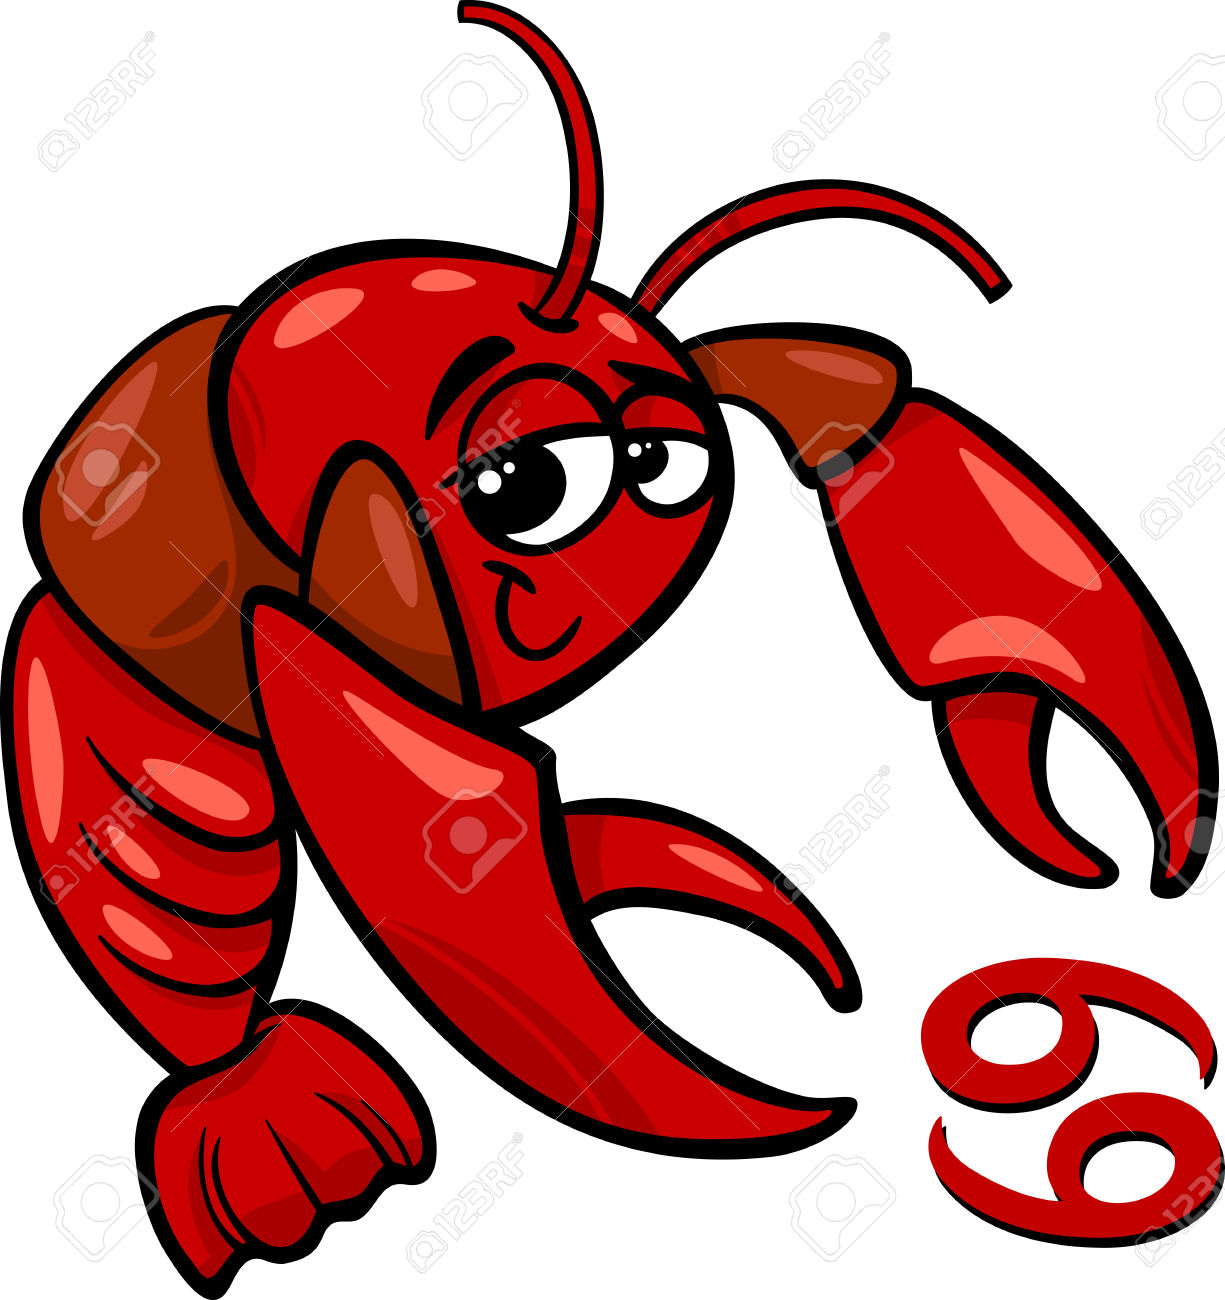 Crawfish Images & Stock Pictures. Royalty Free Crawfish Photos And.